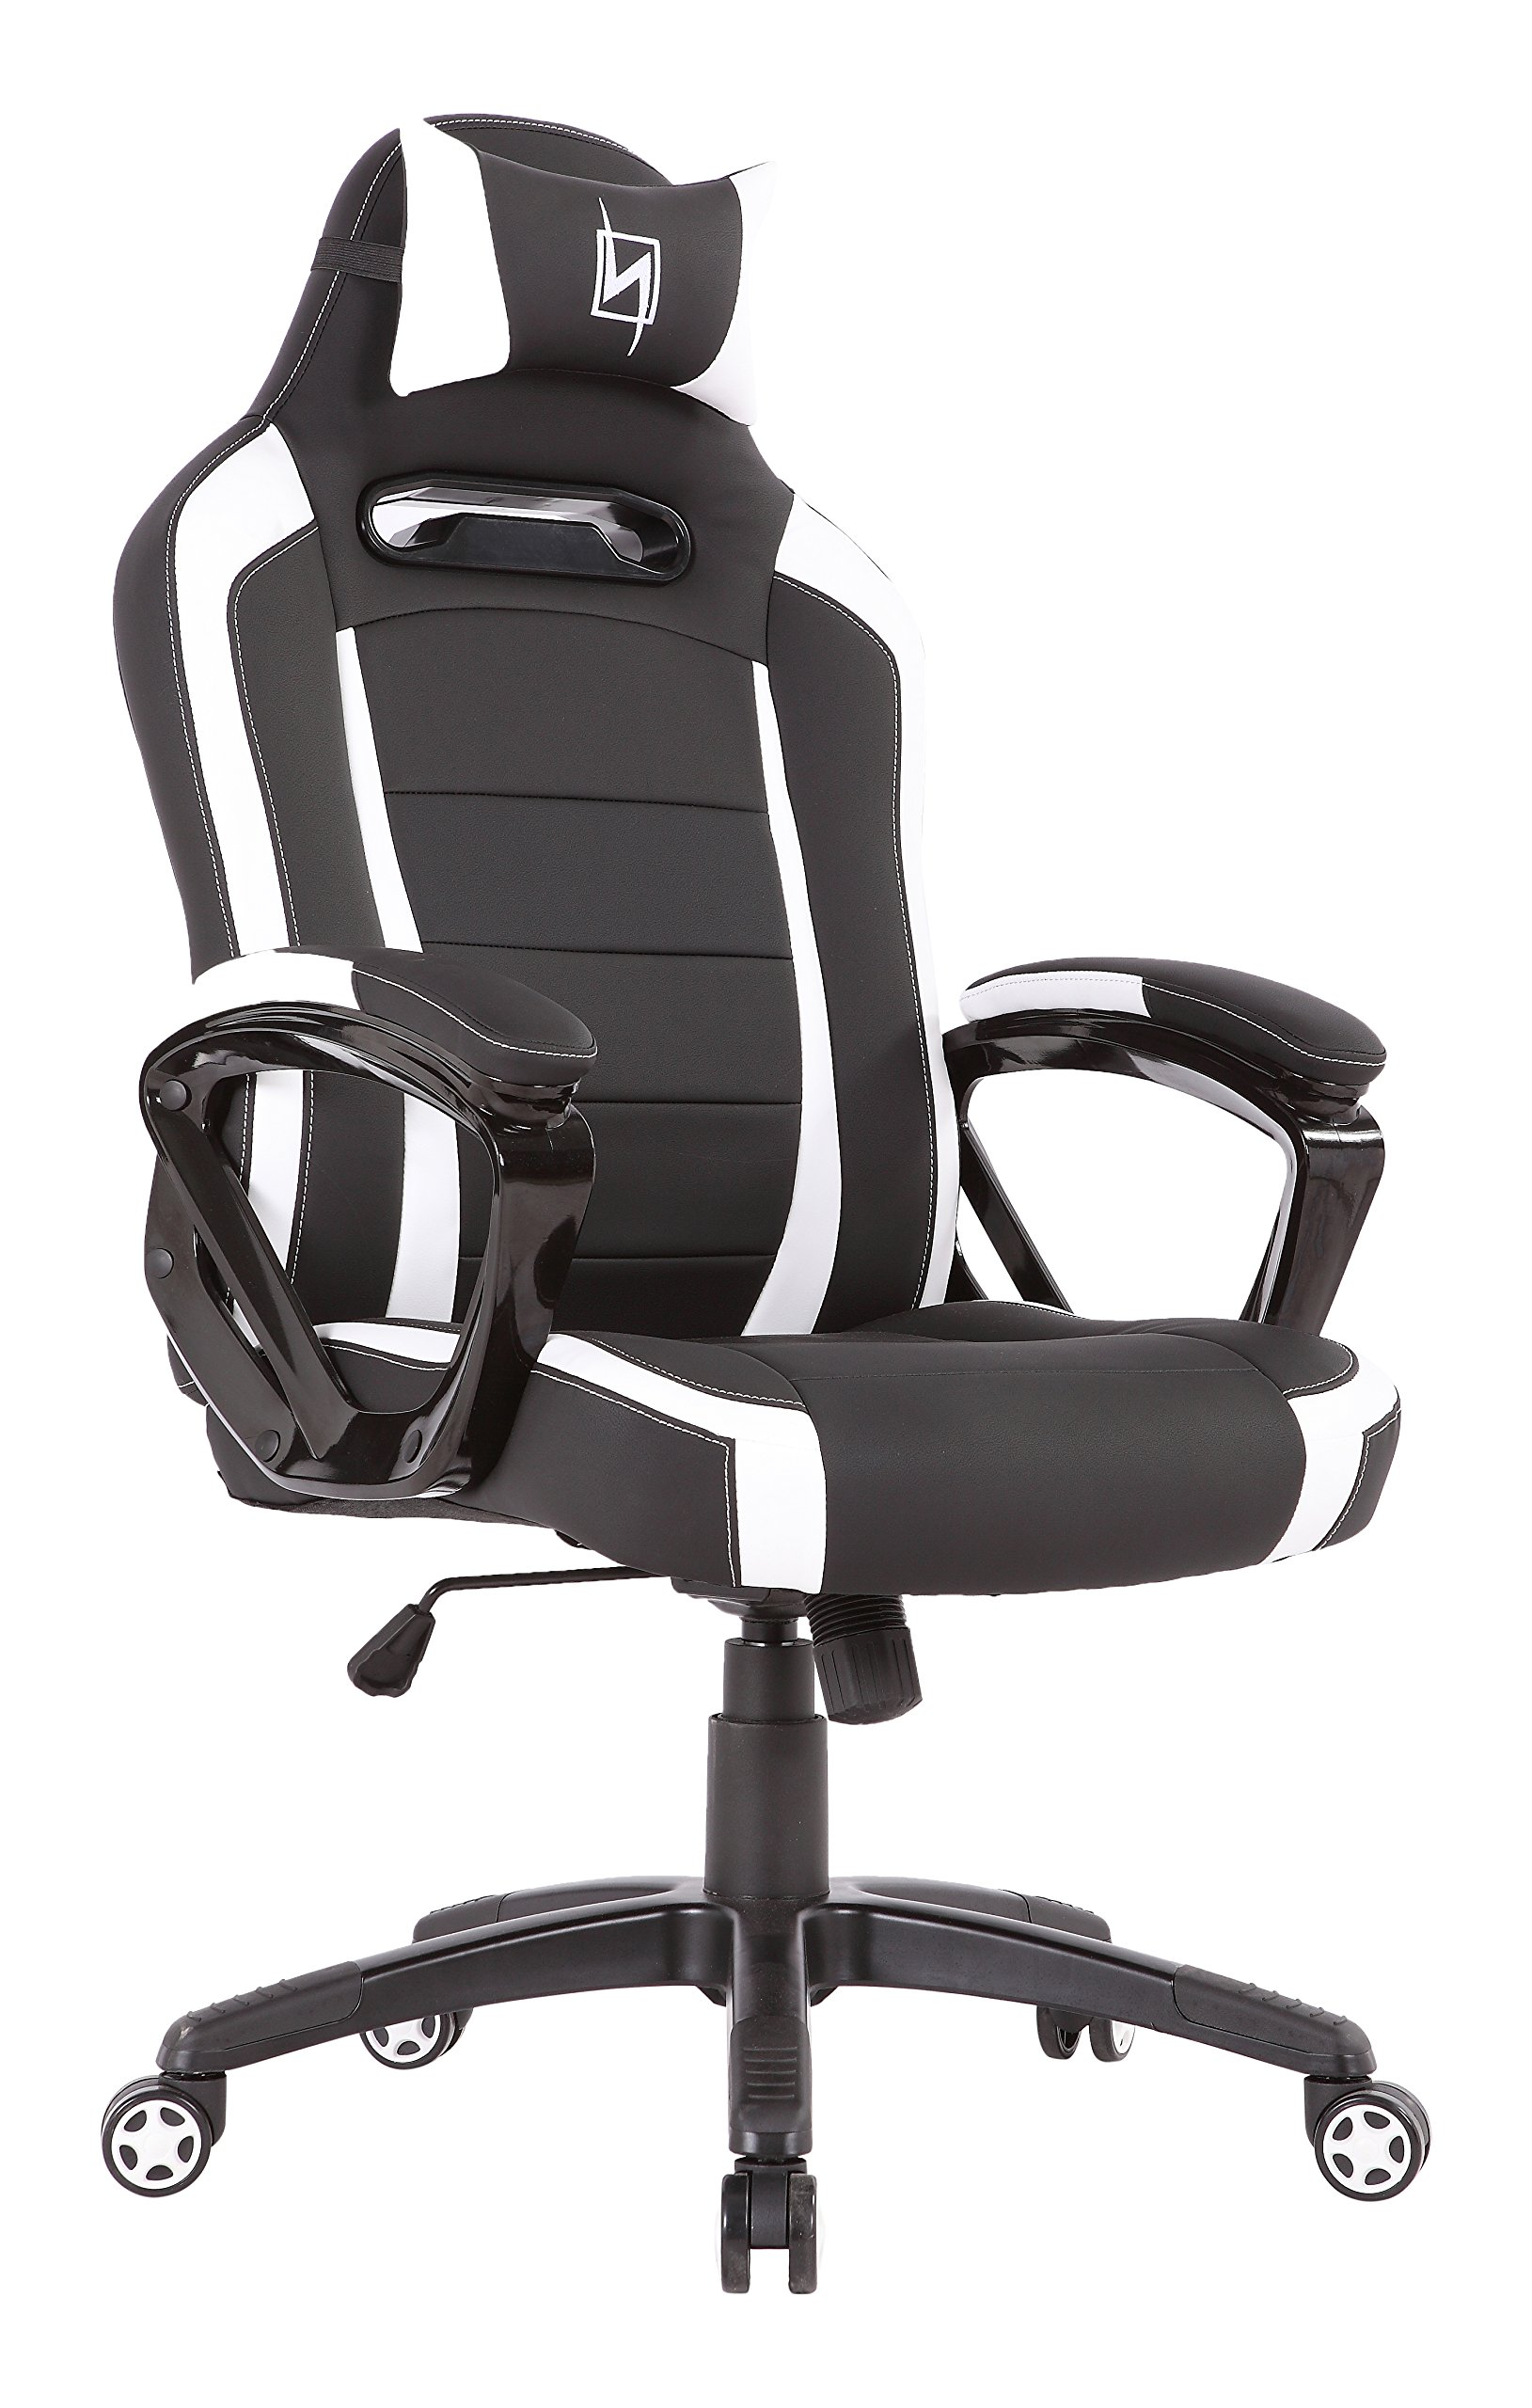 N Seat Pro 300 Series NS-PRO300_WT Office Gaming Ergonomic Computer Desk Executive Chair Furniture with Pillows, 360 Degree of Rotation, Black/White